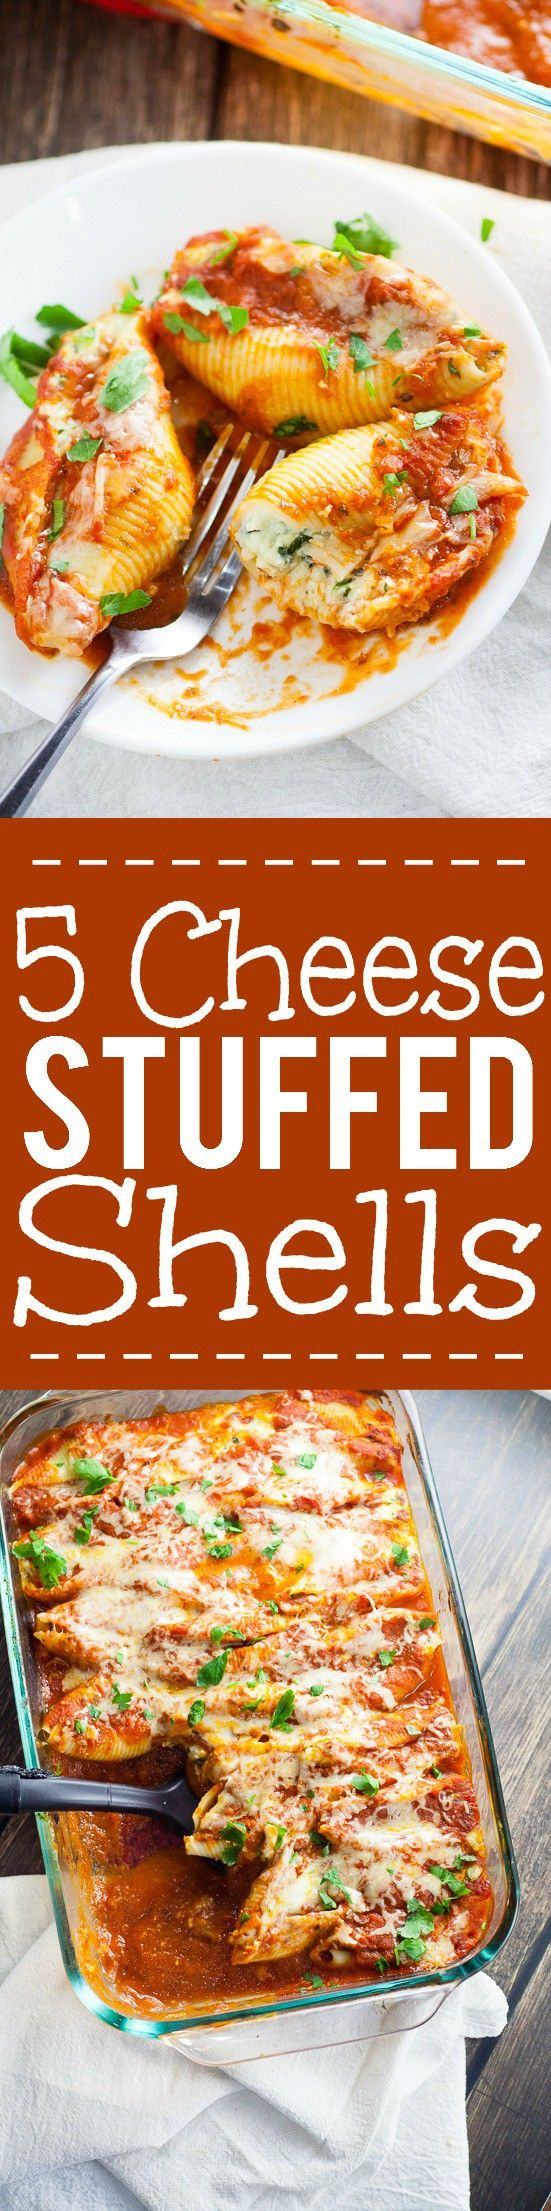 5 Cheese Stuffed Shells Recipe is an easy pasta recipe perfect for family dinner.Classic Italian flavors featuring five different cheeses, garlic, spinach, and red sauce this 5 Cheese Stuffed Shell Recipe is creamy, cheesy, and satisfying. Perfect for a meatless family dinner recipe! Yum! I love cheese!